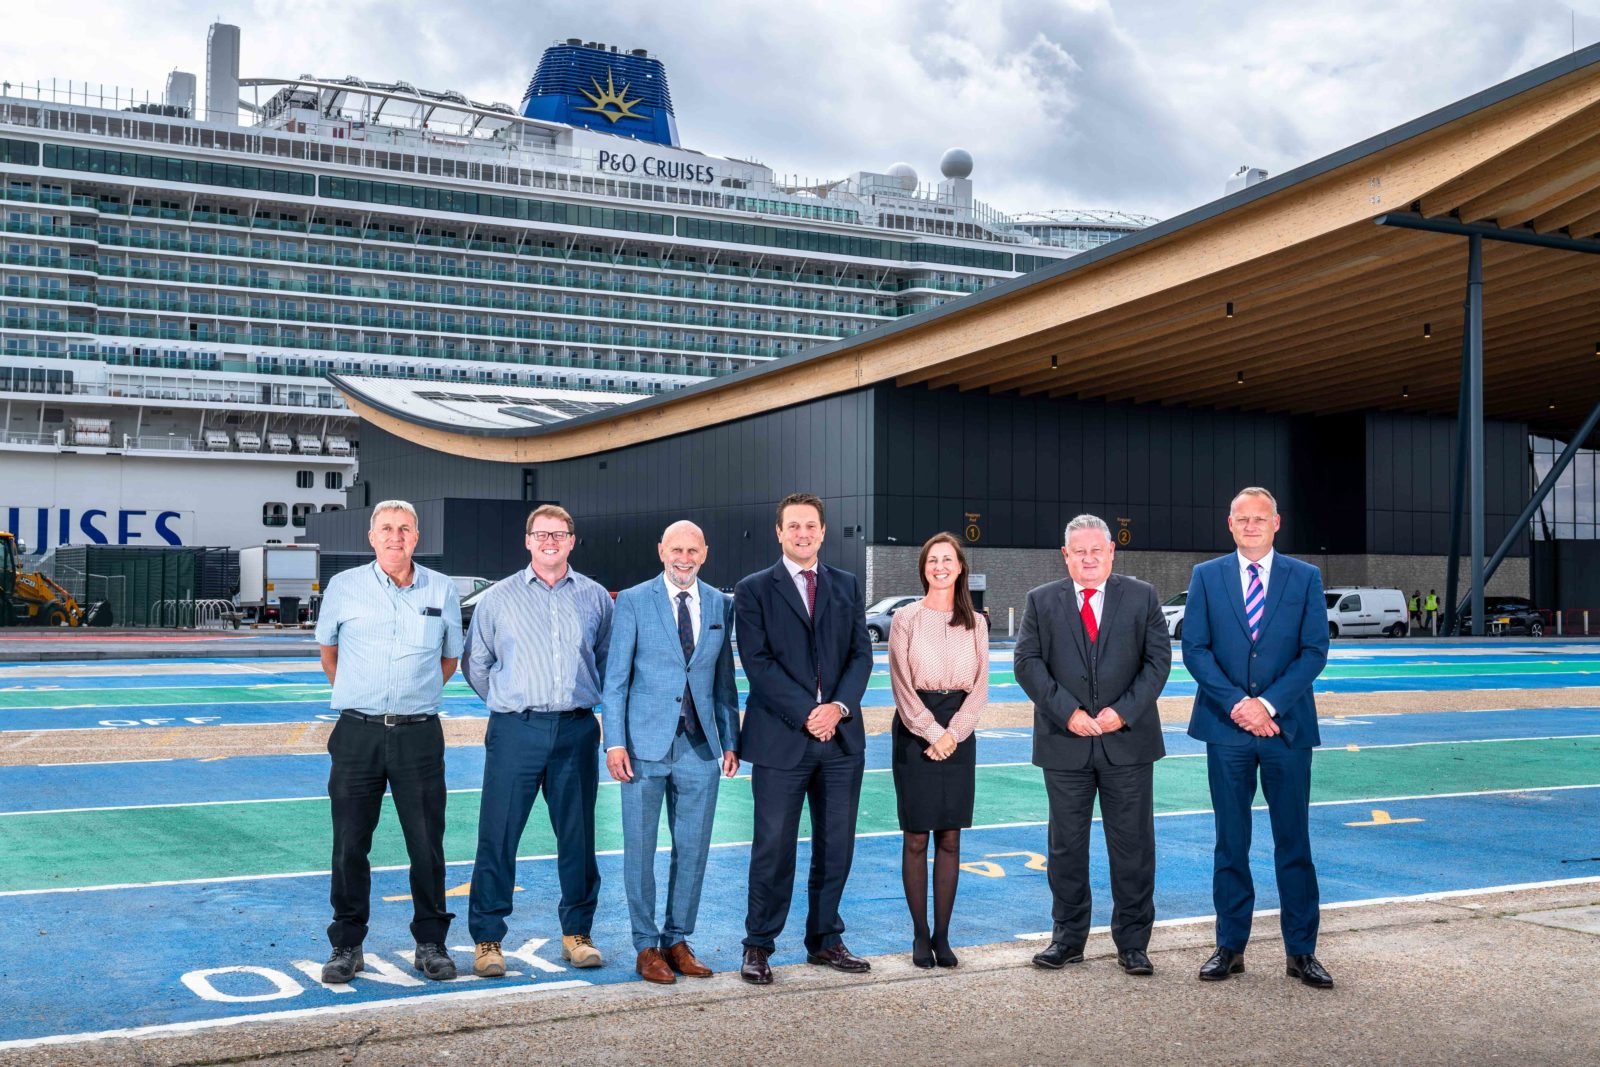 FIRST SIGHT: Brymor Construction directors with Horizon cruise terminal project managers. From left to right: contracts manager Andy Mathews, managing surveyor Peter Swift, chairman Stephen Morton, group managing director Mark Dyer, group HR Director Carmen Morton, group commercial director Paul Downing and group pre-construction director Lewis Archibald